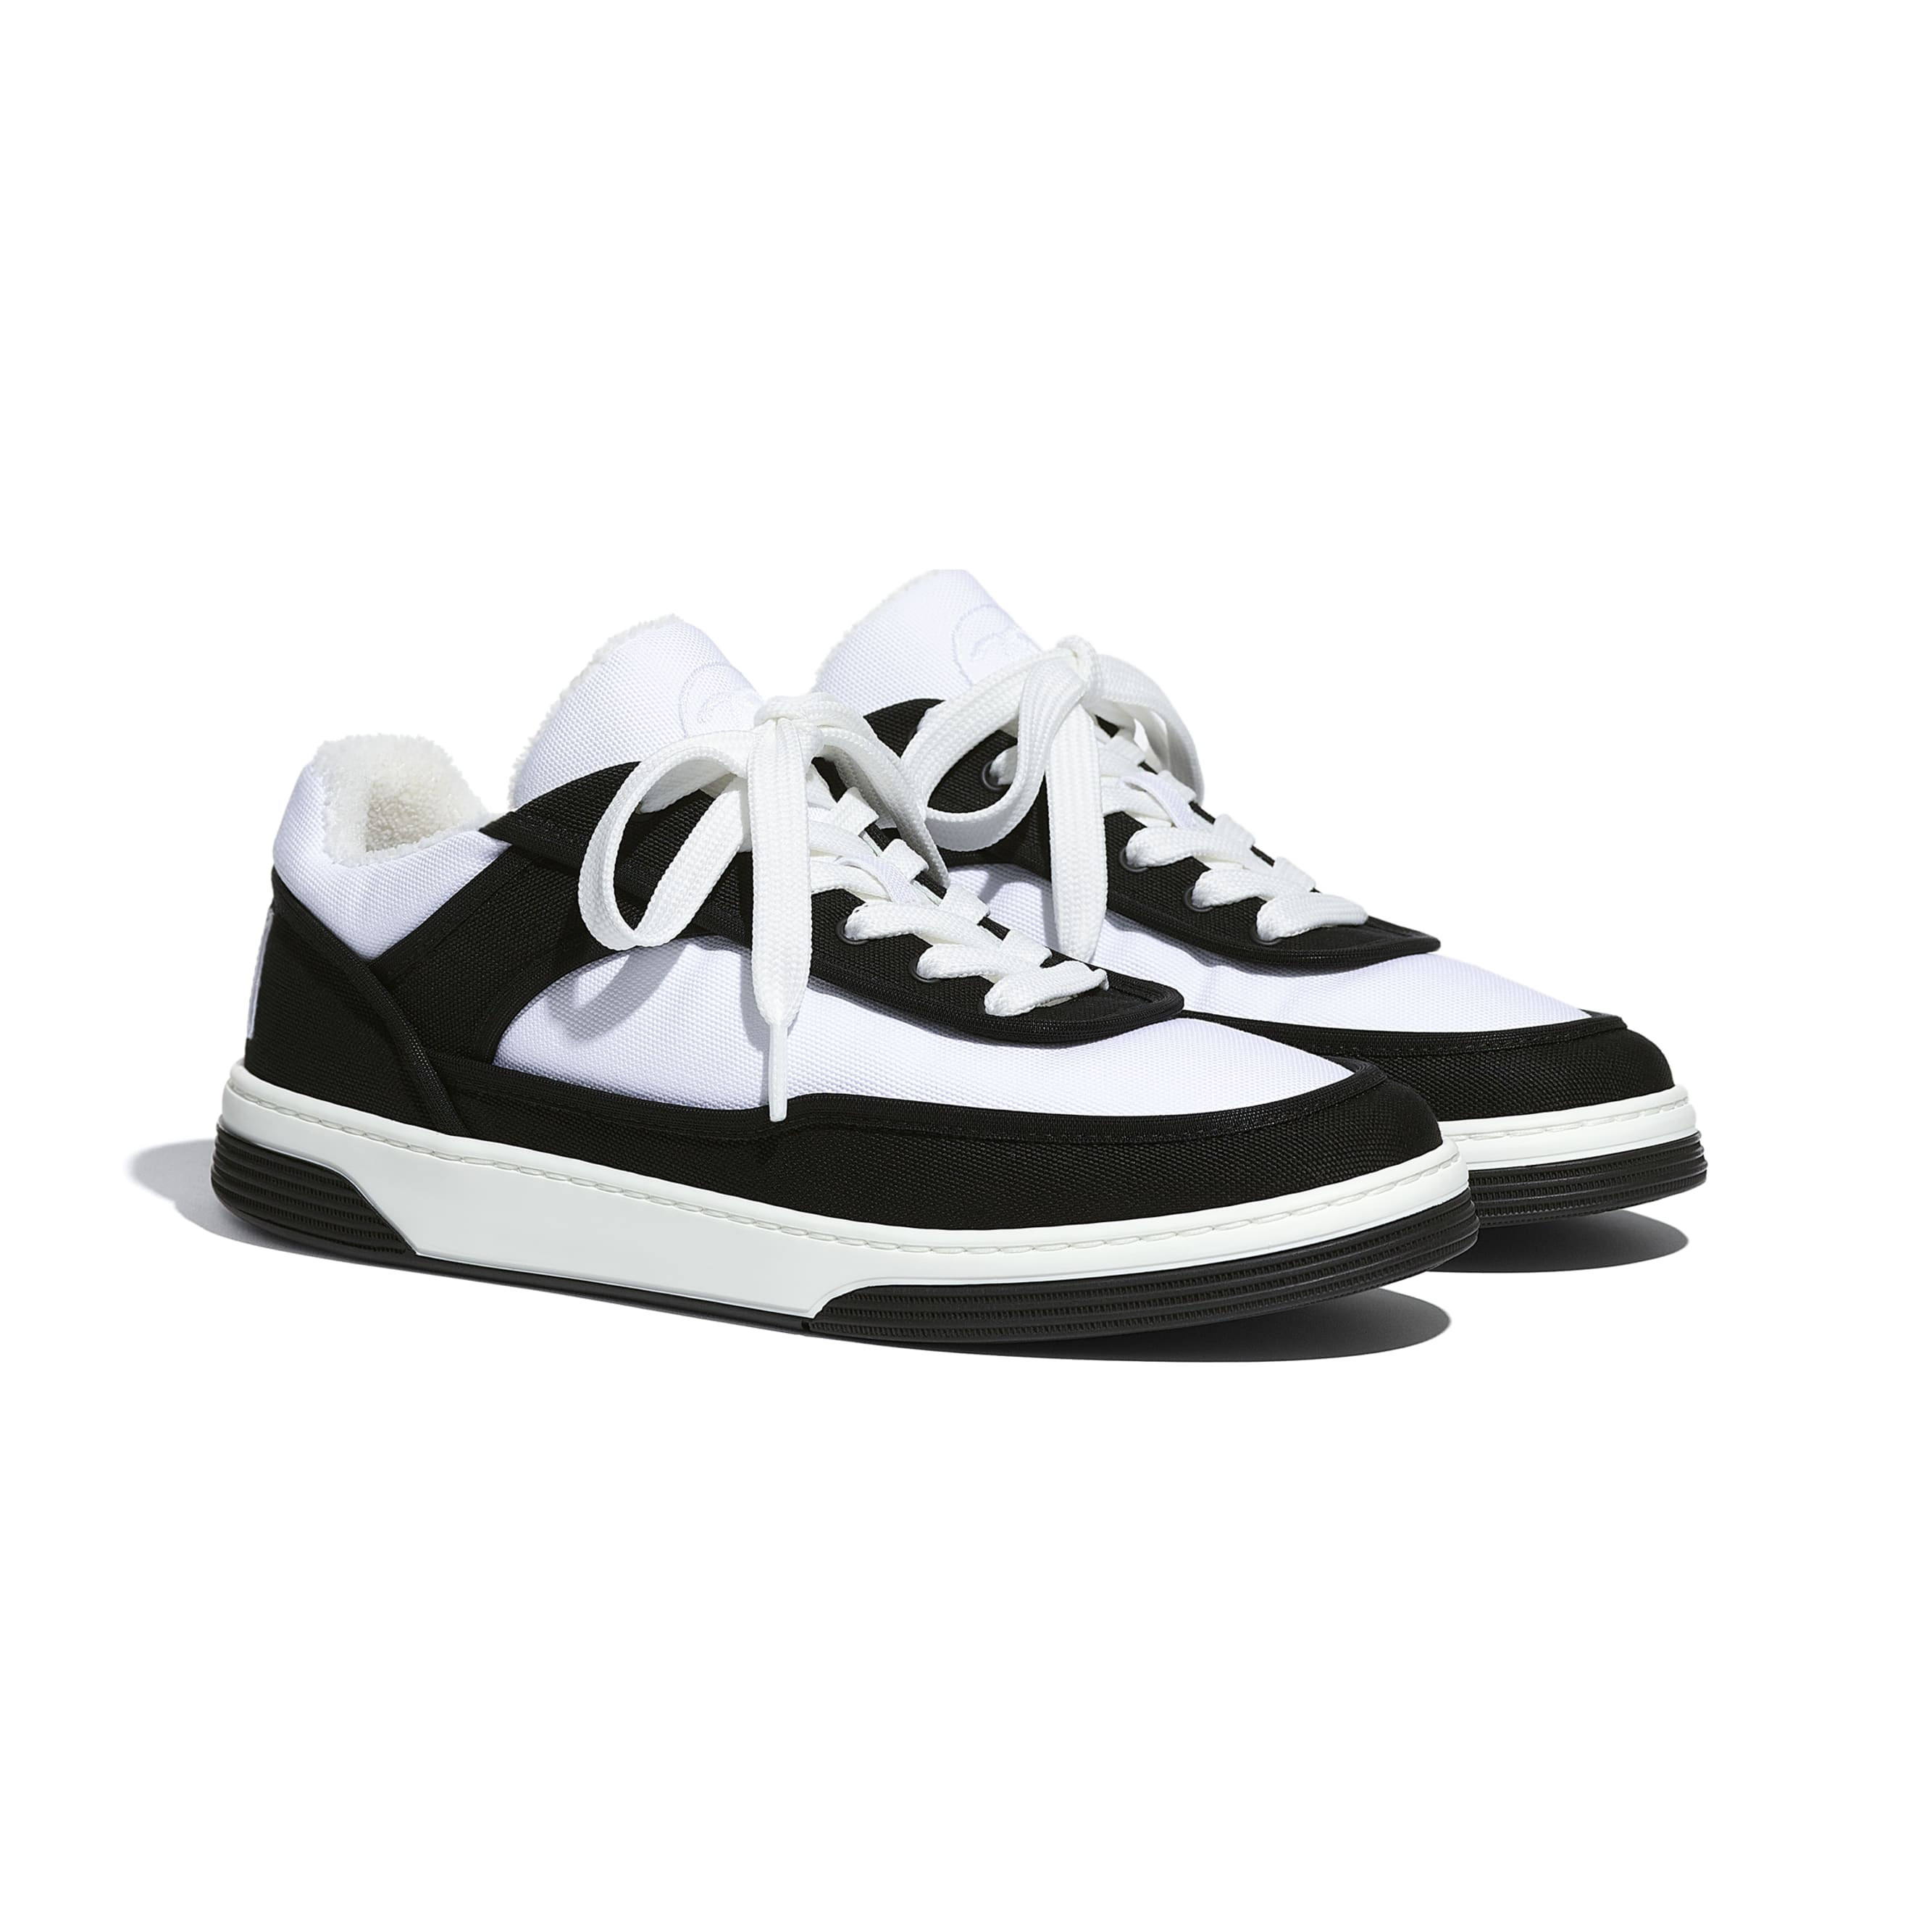 Trainers - Black & White - Fabric - CHANEL - Alternative view - see standard sized version